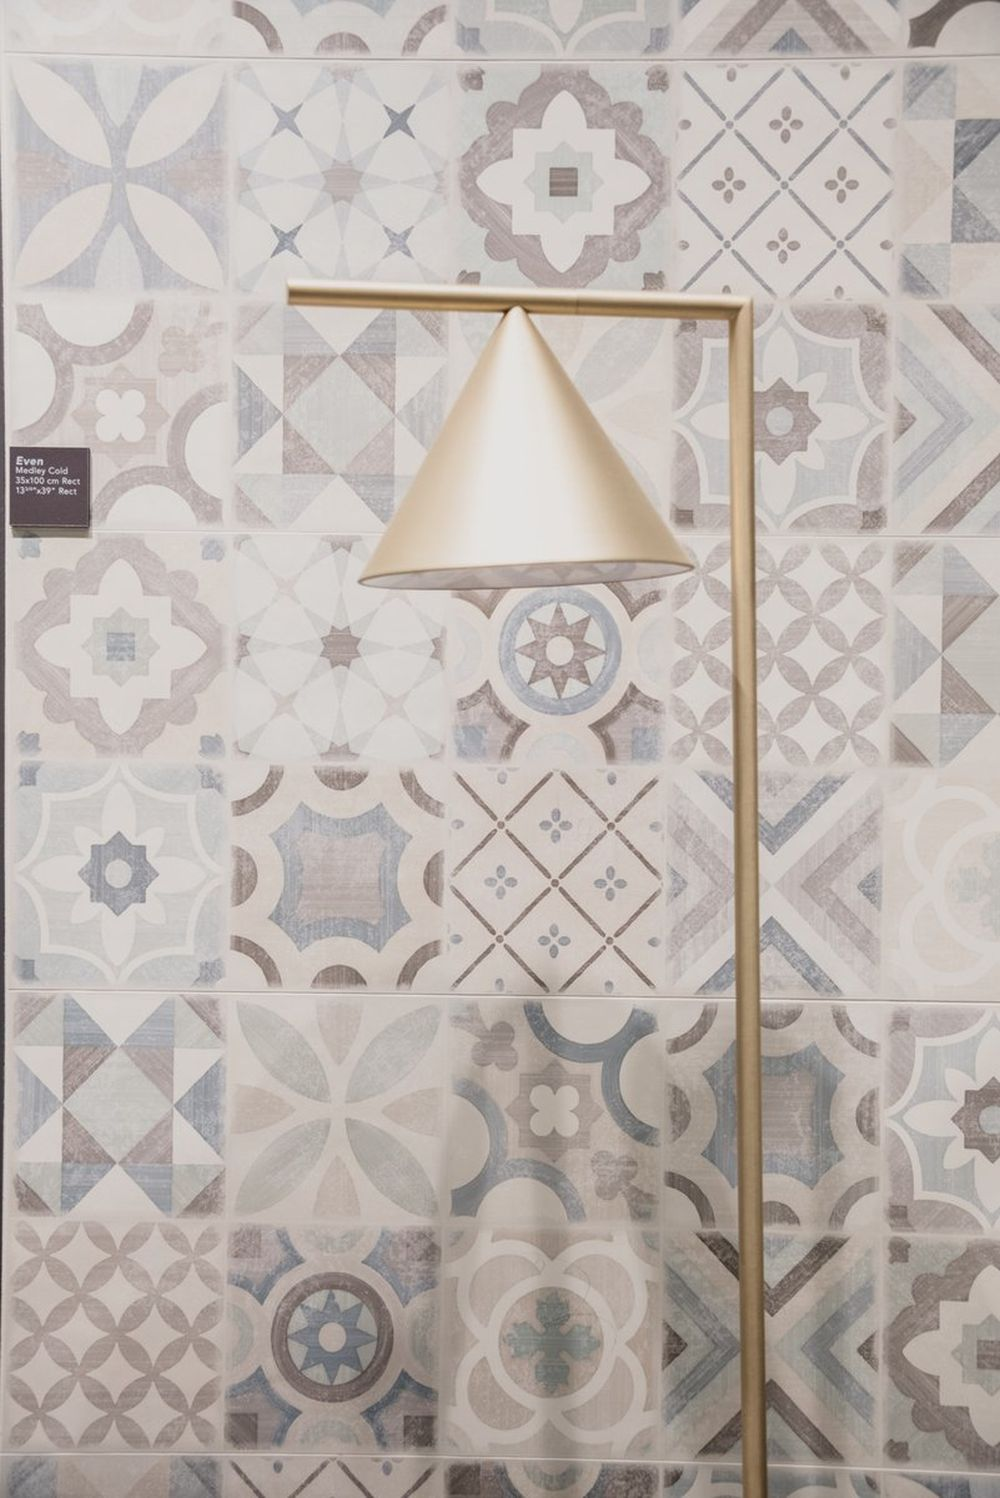 Awesome New Bathroom and Tile Inspiration from Cersaie 2018